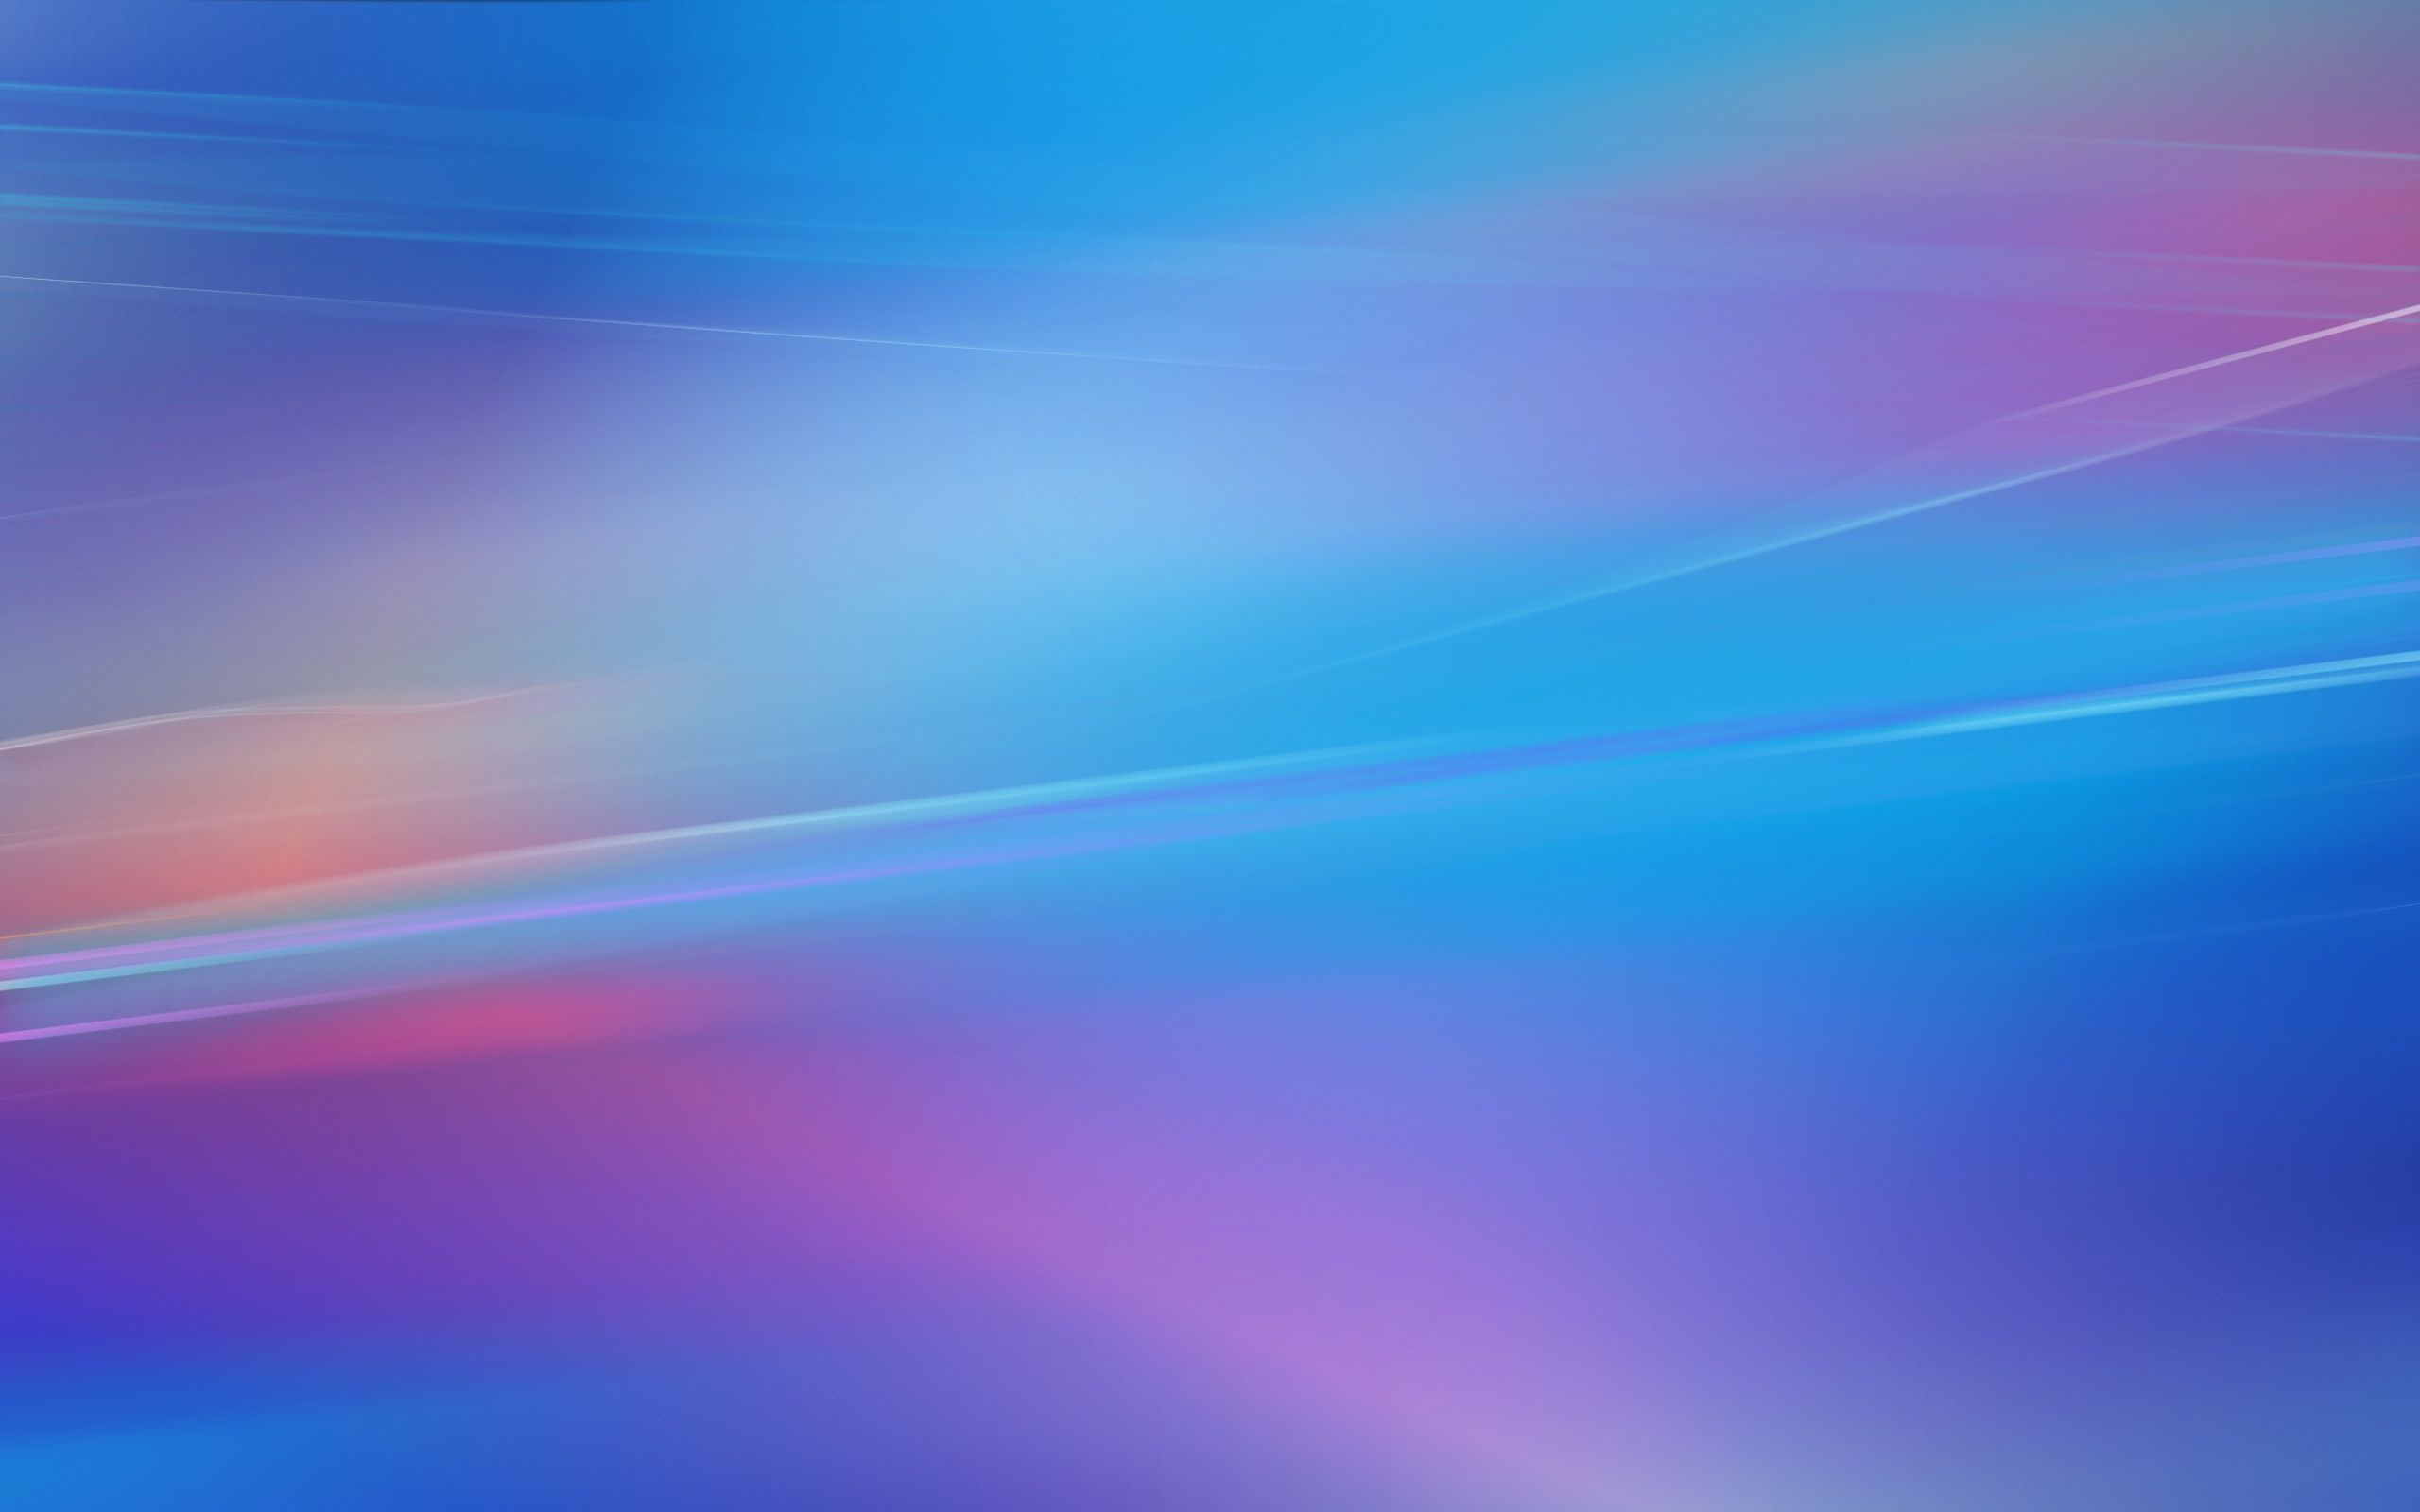 Wallpapers Solid Colors